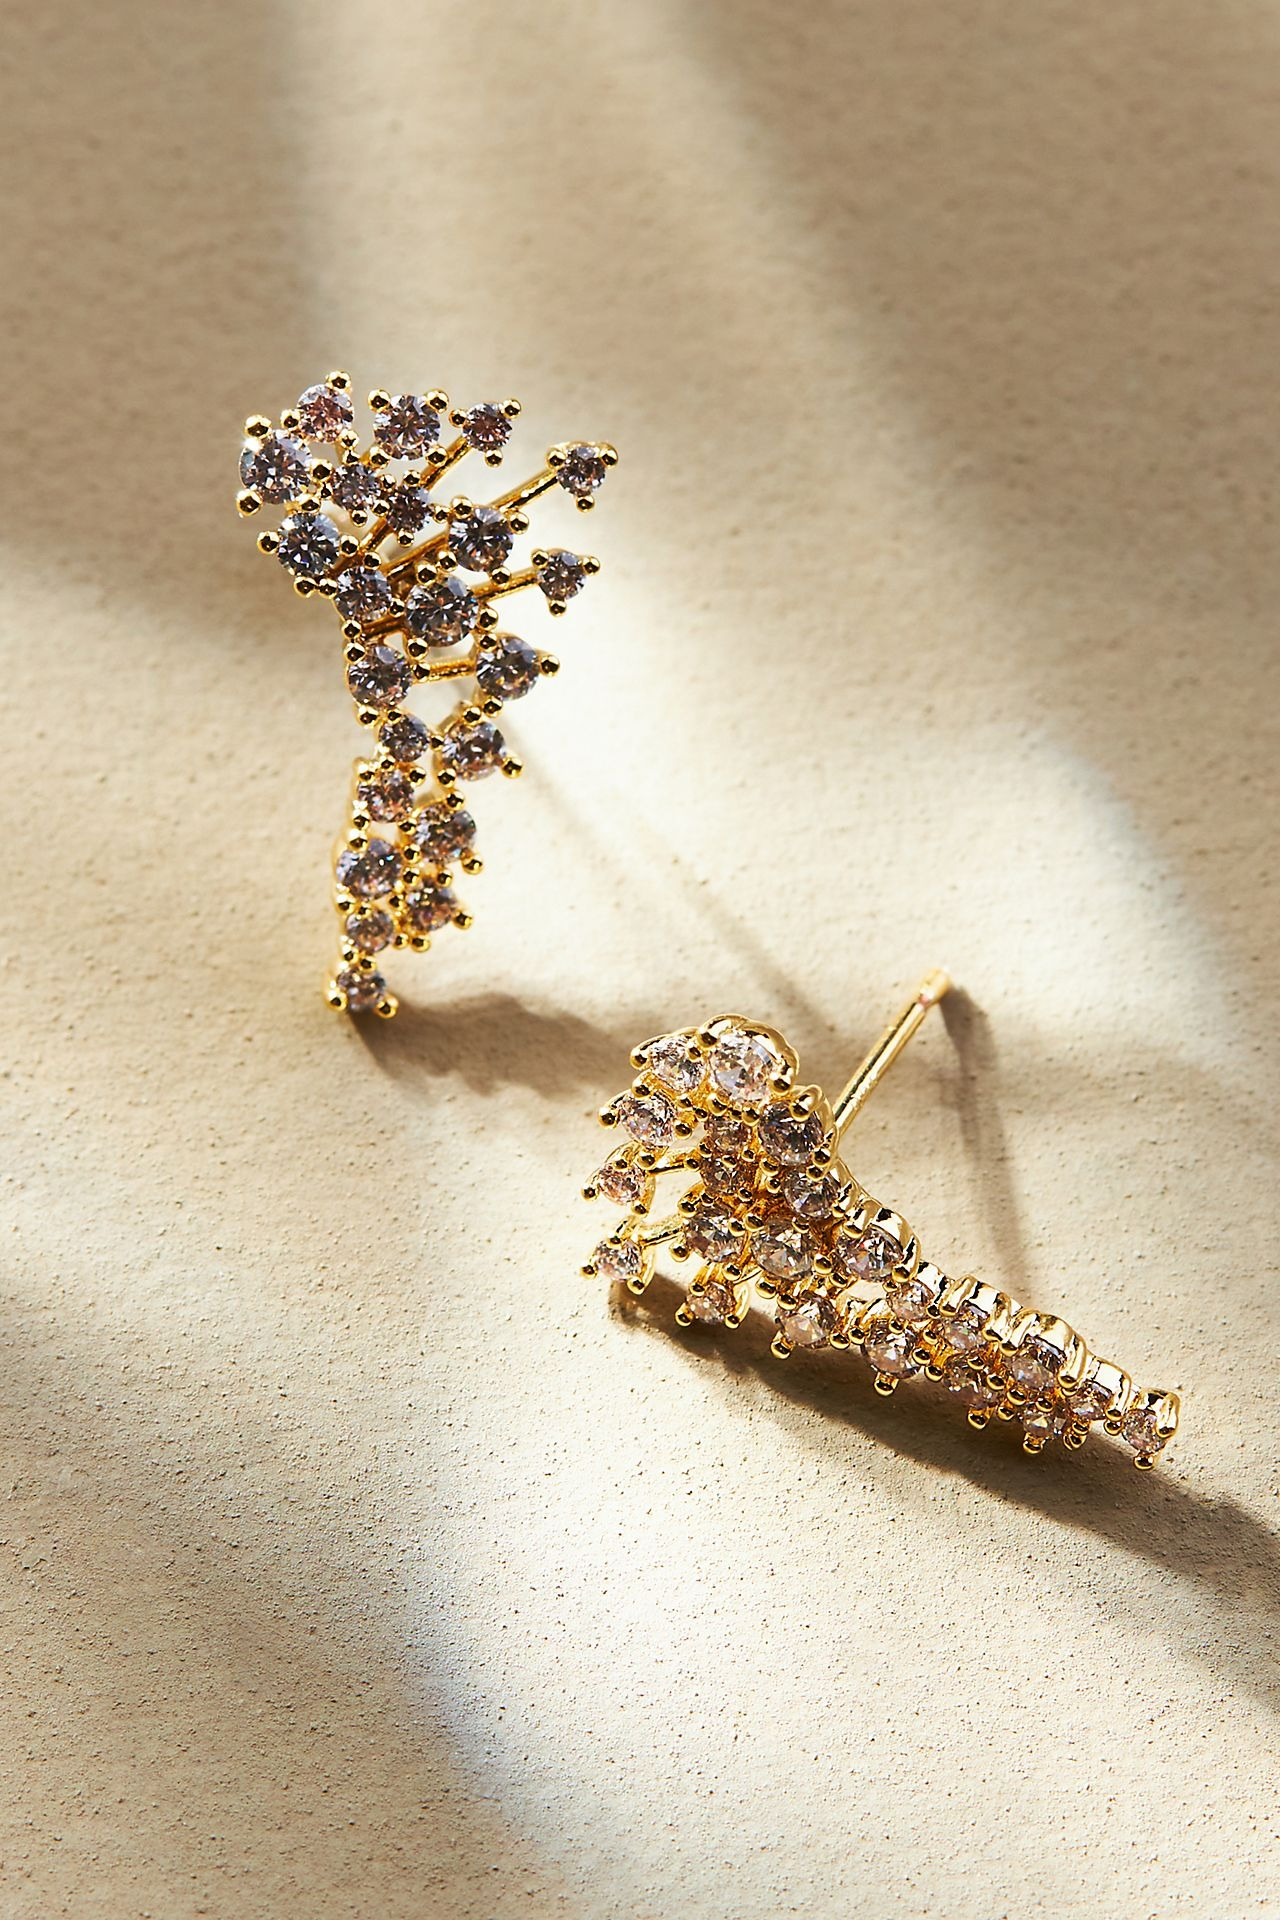 sparkling gold crawler earrings with rounded pearl shaped prongs